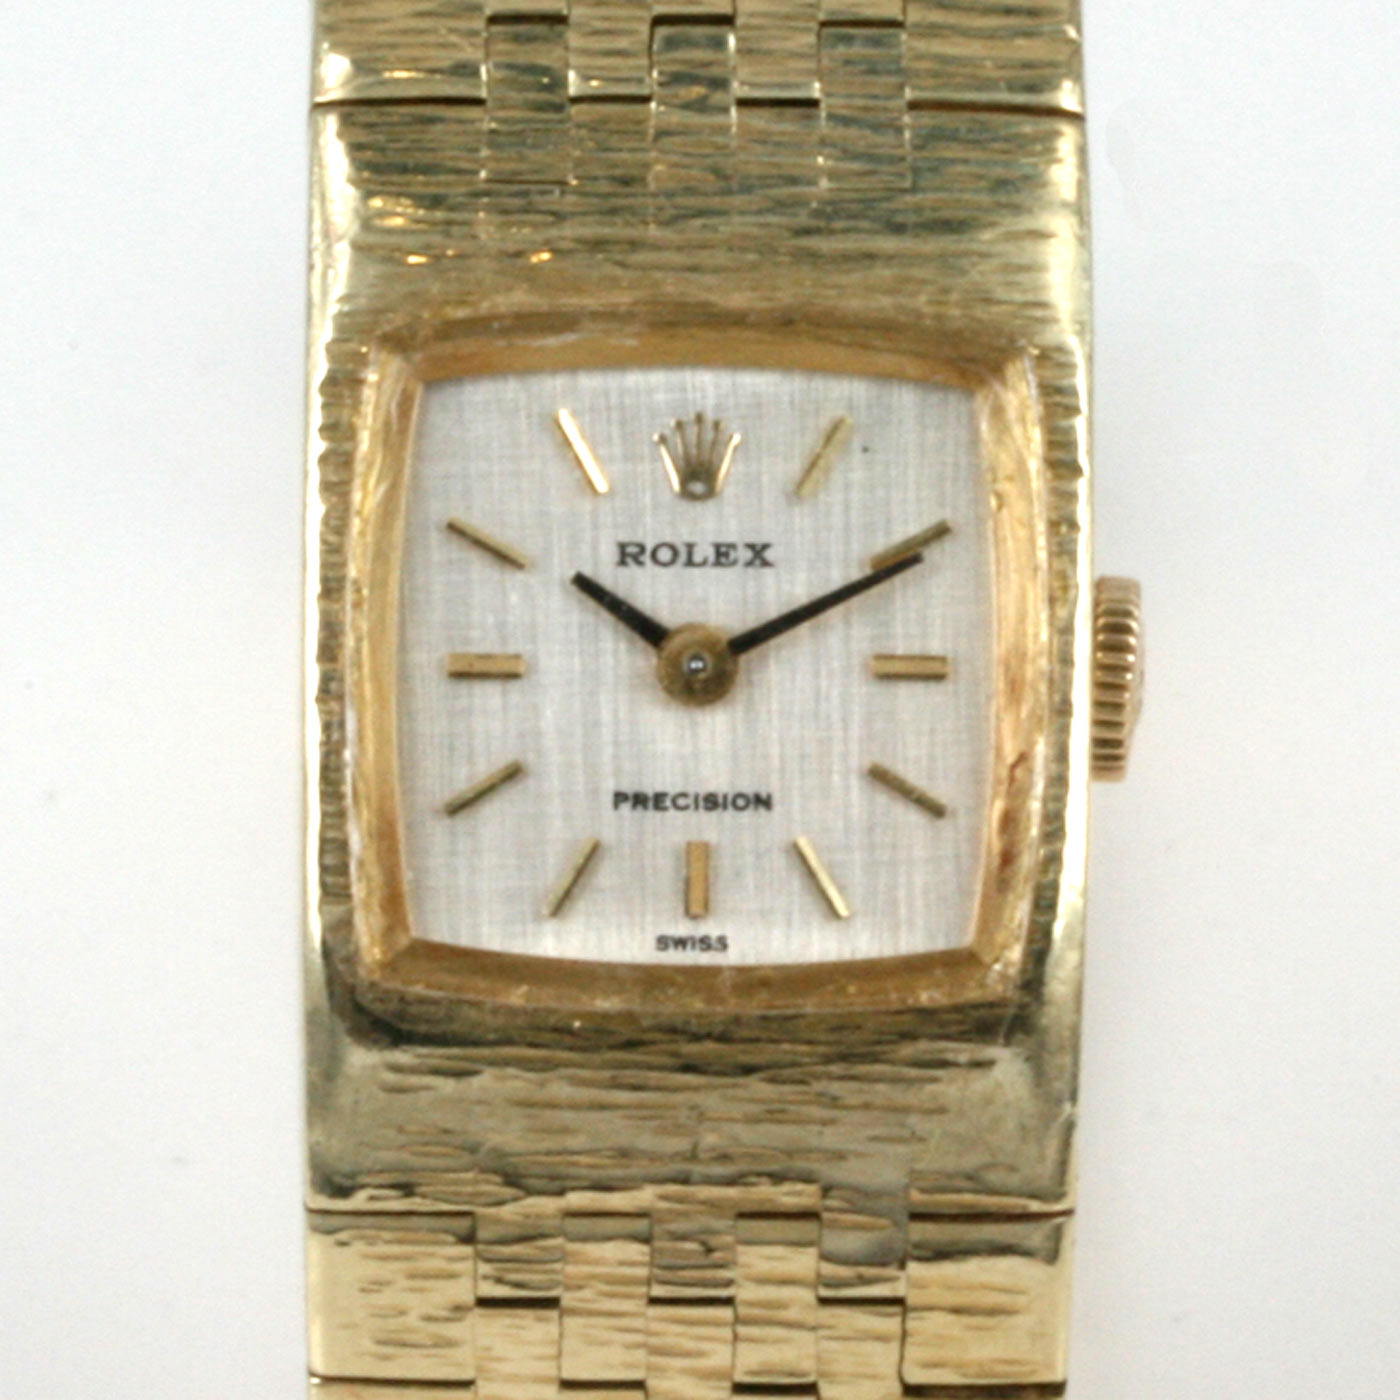 Buy 18ct Gold Ladies Rolex Precision Watch Sold Items